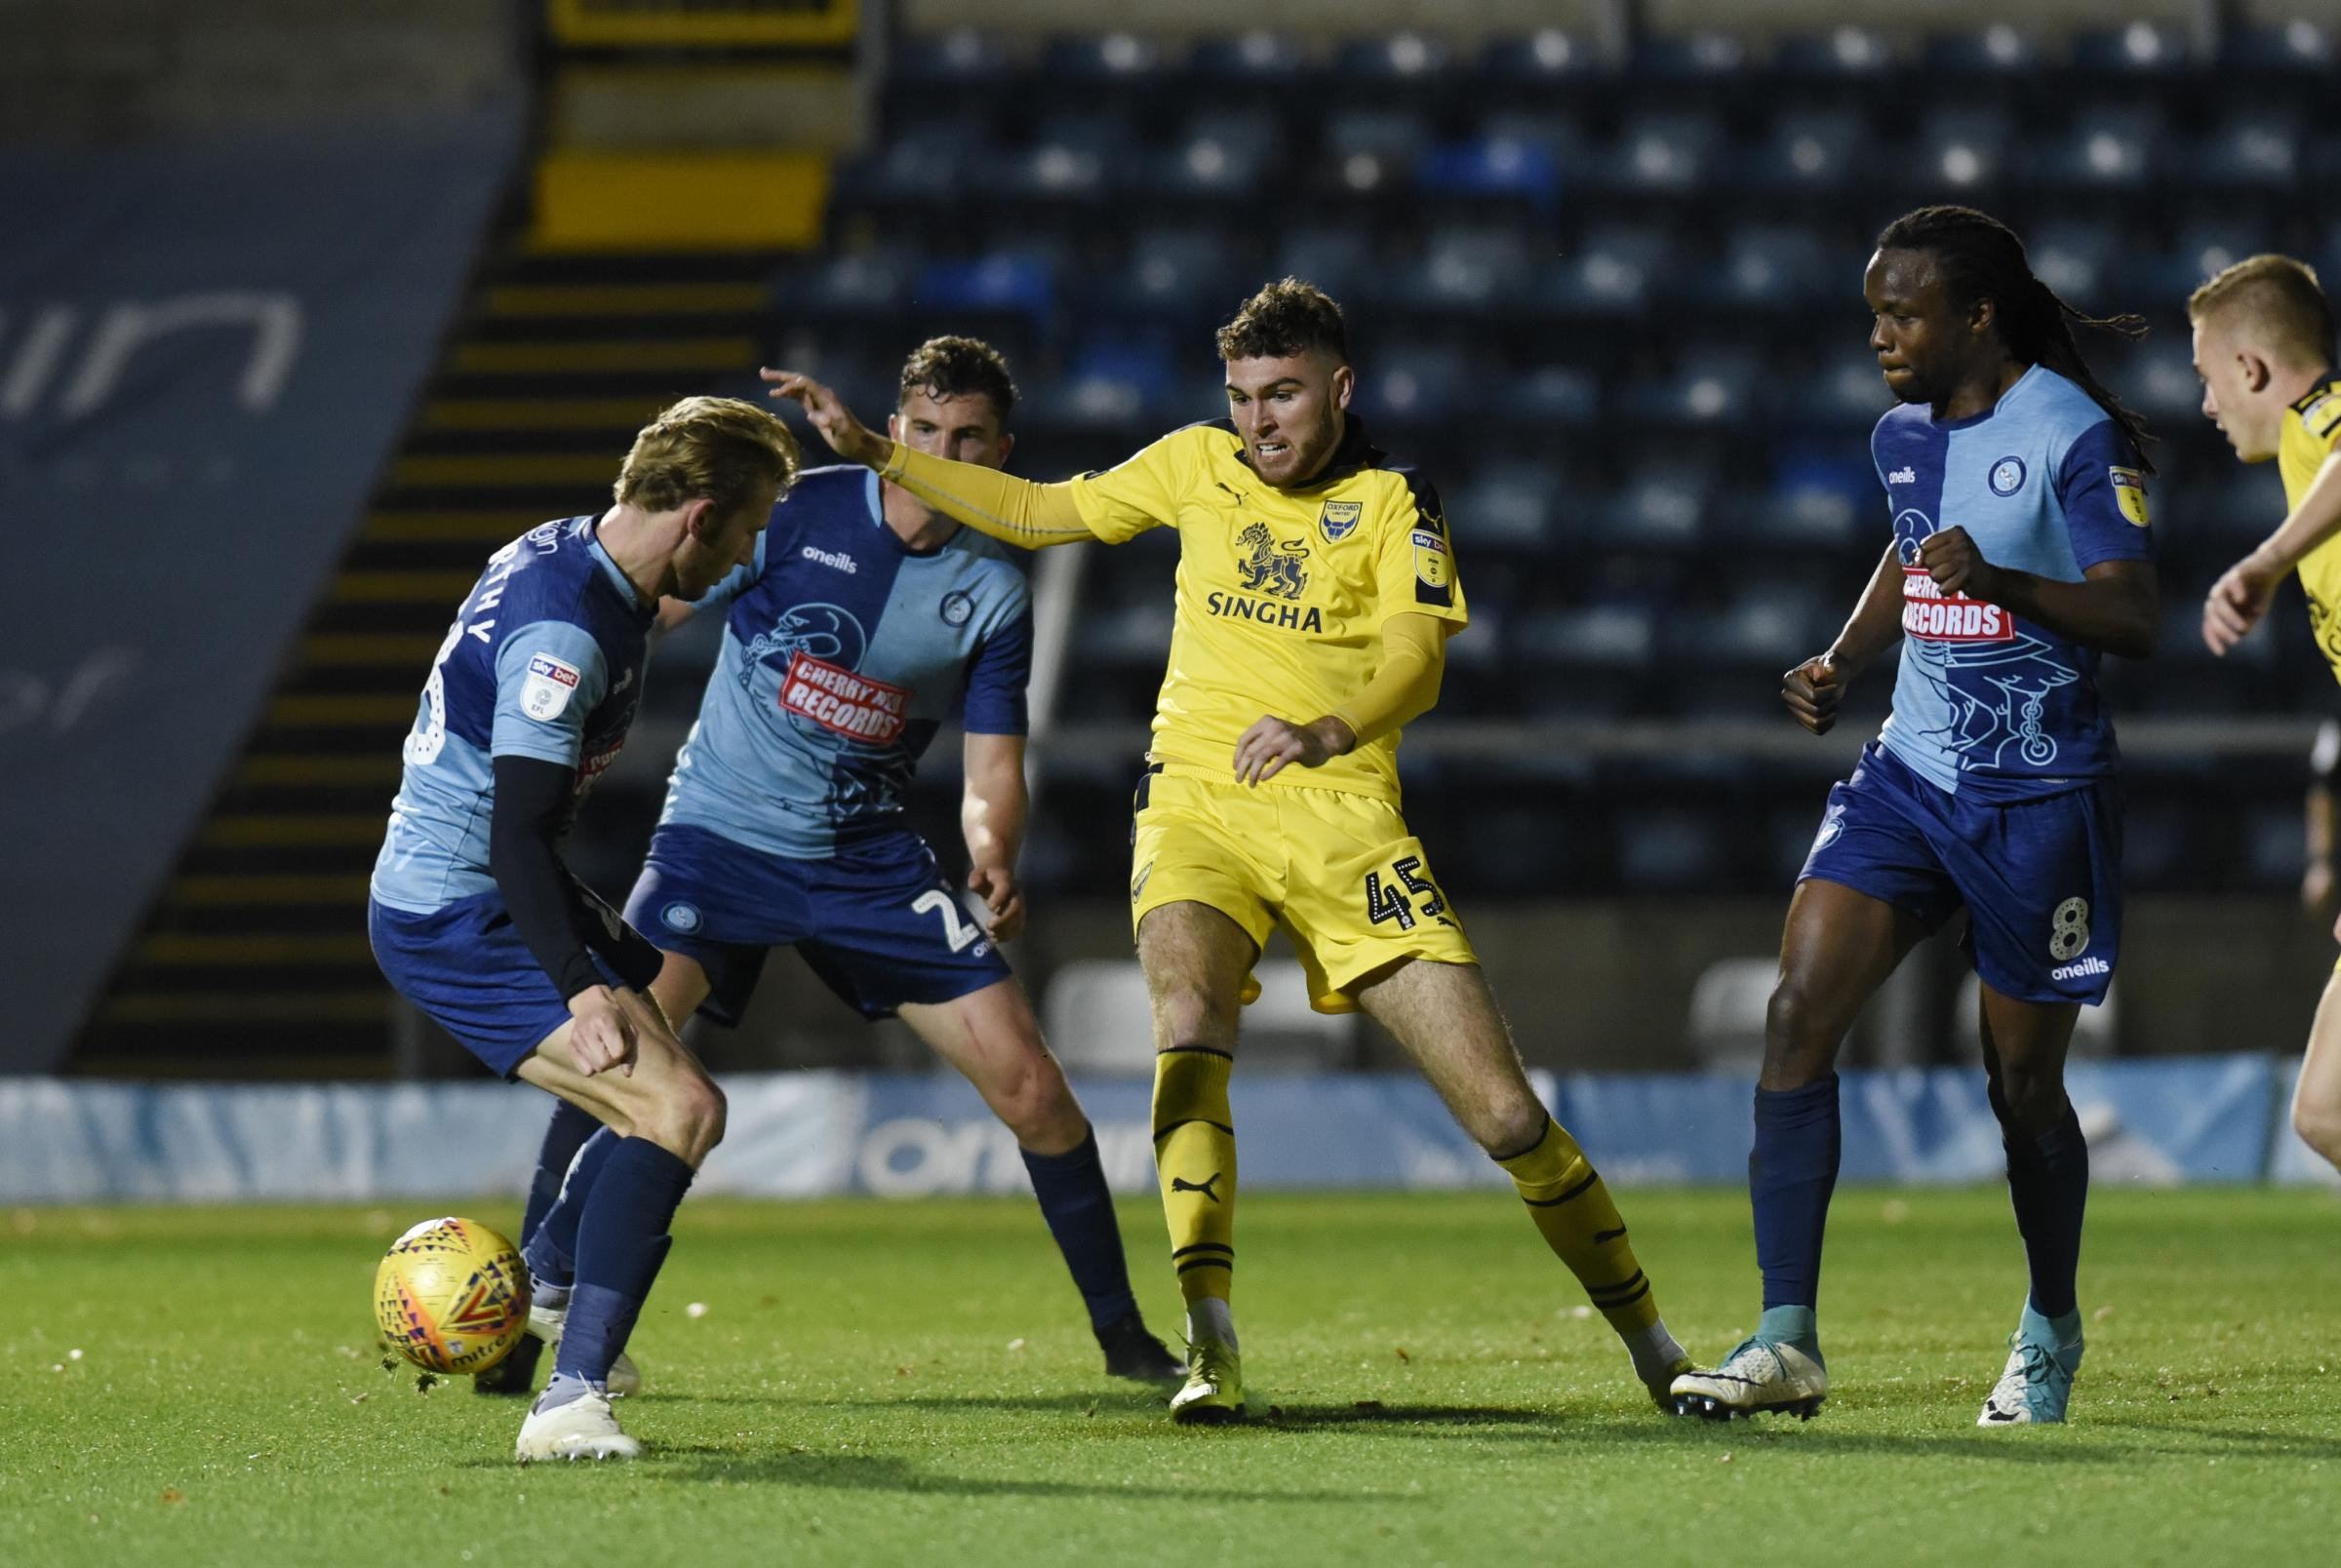 Harvey Bradbury made his Oxford United debut in the Checkatrade Trophy group stage win at Wycombe Wanderers in November  Picture: David Fleming